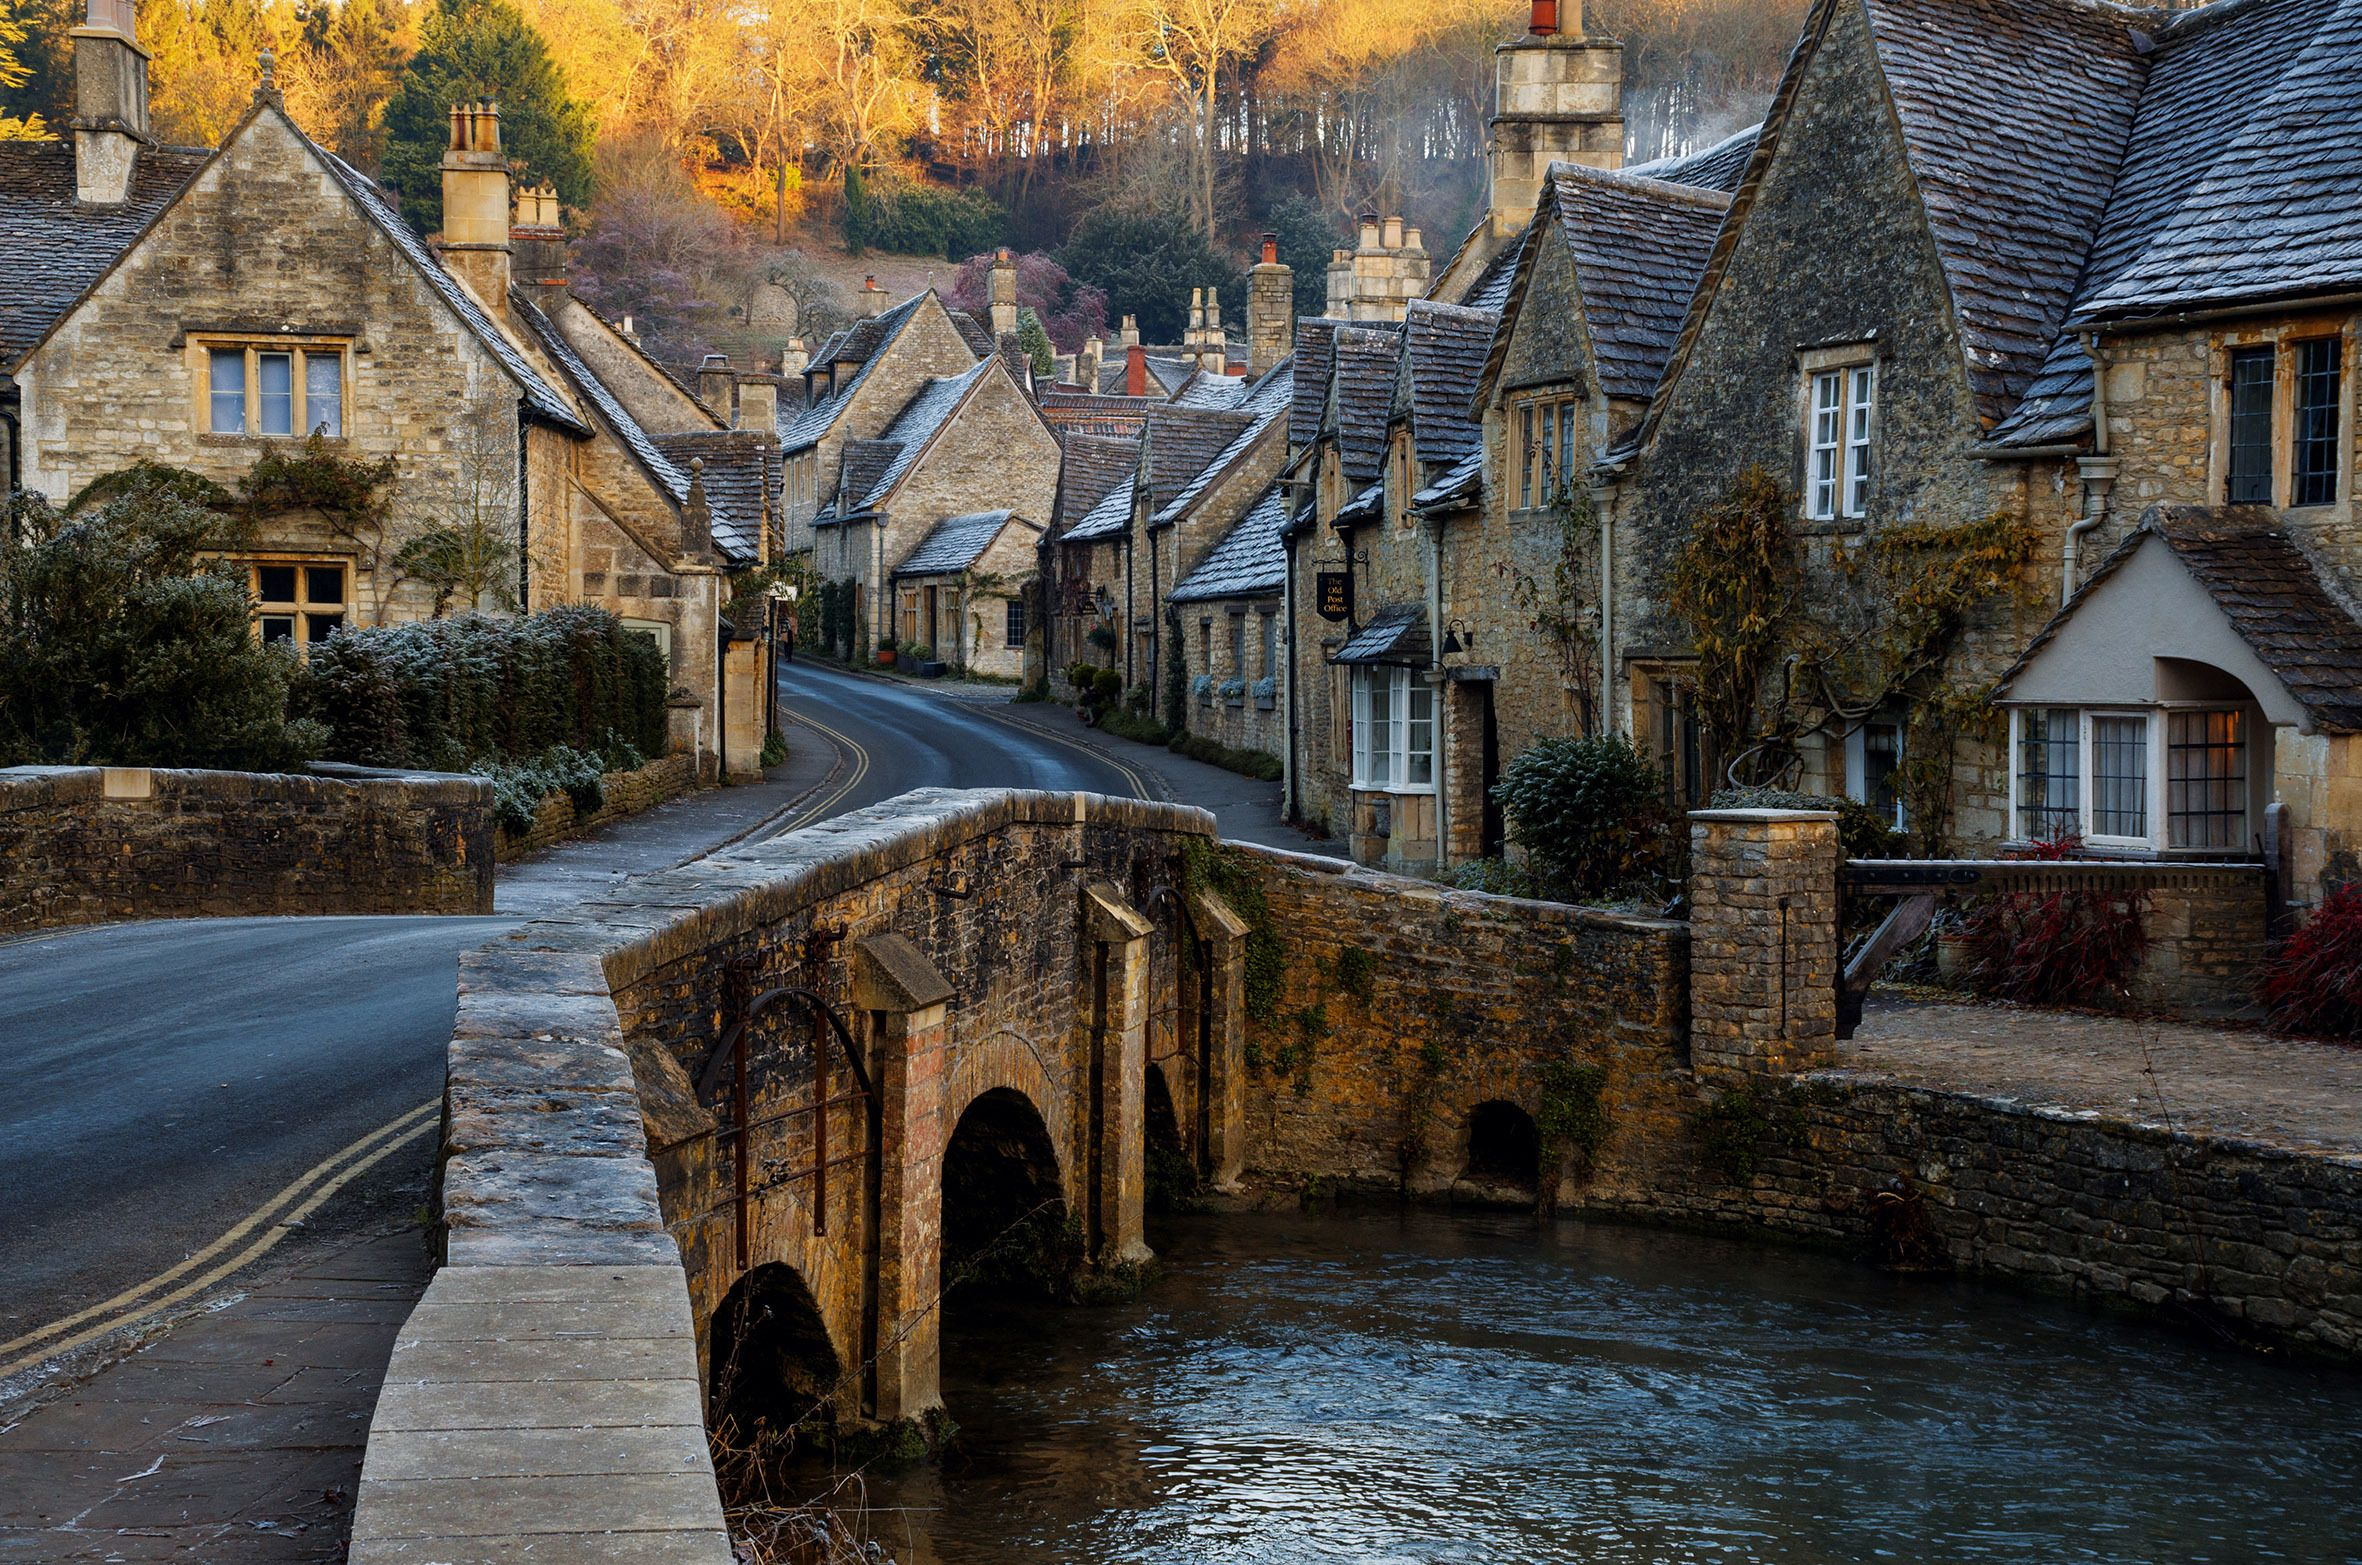 Here S How To Have A Perfect Day Out In Castle Combe Castle Combe Cotswolds England Castle